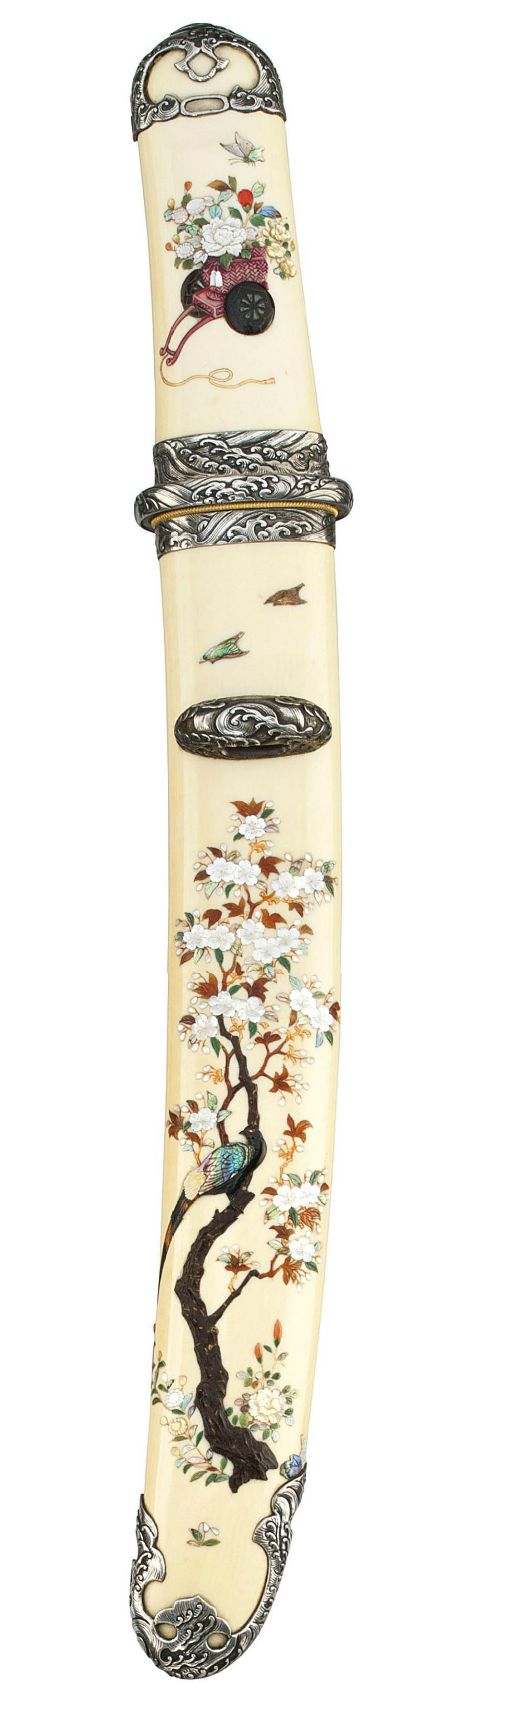 A Fine Shibayama Tanto Koshirae  Meiji Period (late 19th century)  Inlaid in Shibayama style with a pheasant in a blossoming cherry tree, the reverse with birds and flowers, engraved silver fittings with waves, containing a tanto blade with horimono of Jogeryu [ascending and descending dragons], gilt clad habaki, Edo Period (19th century)